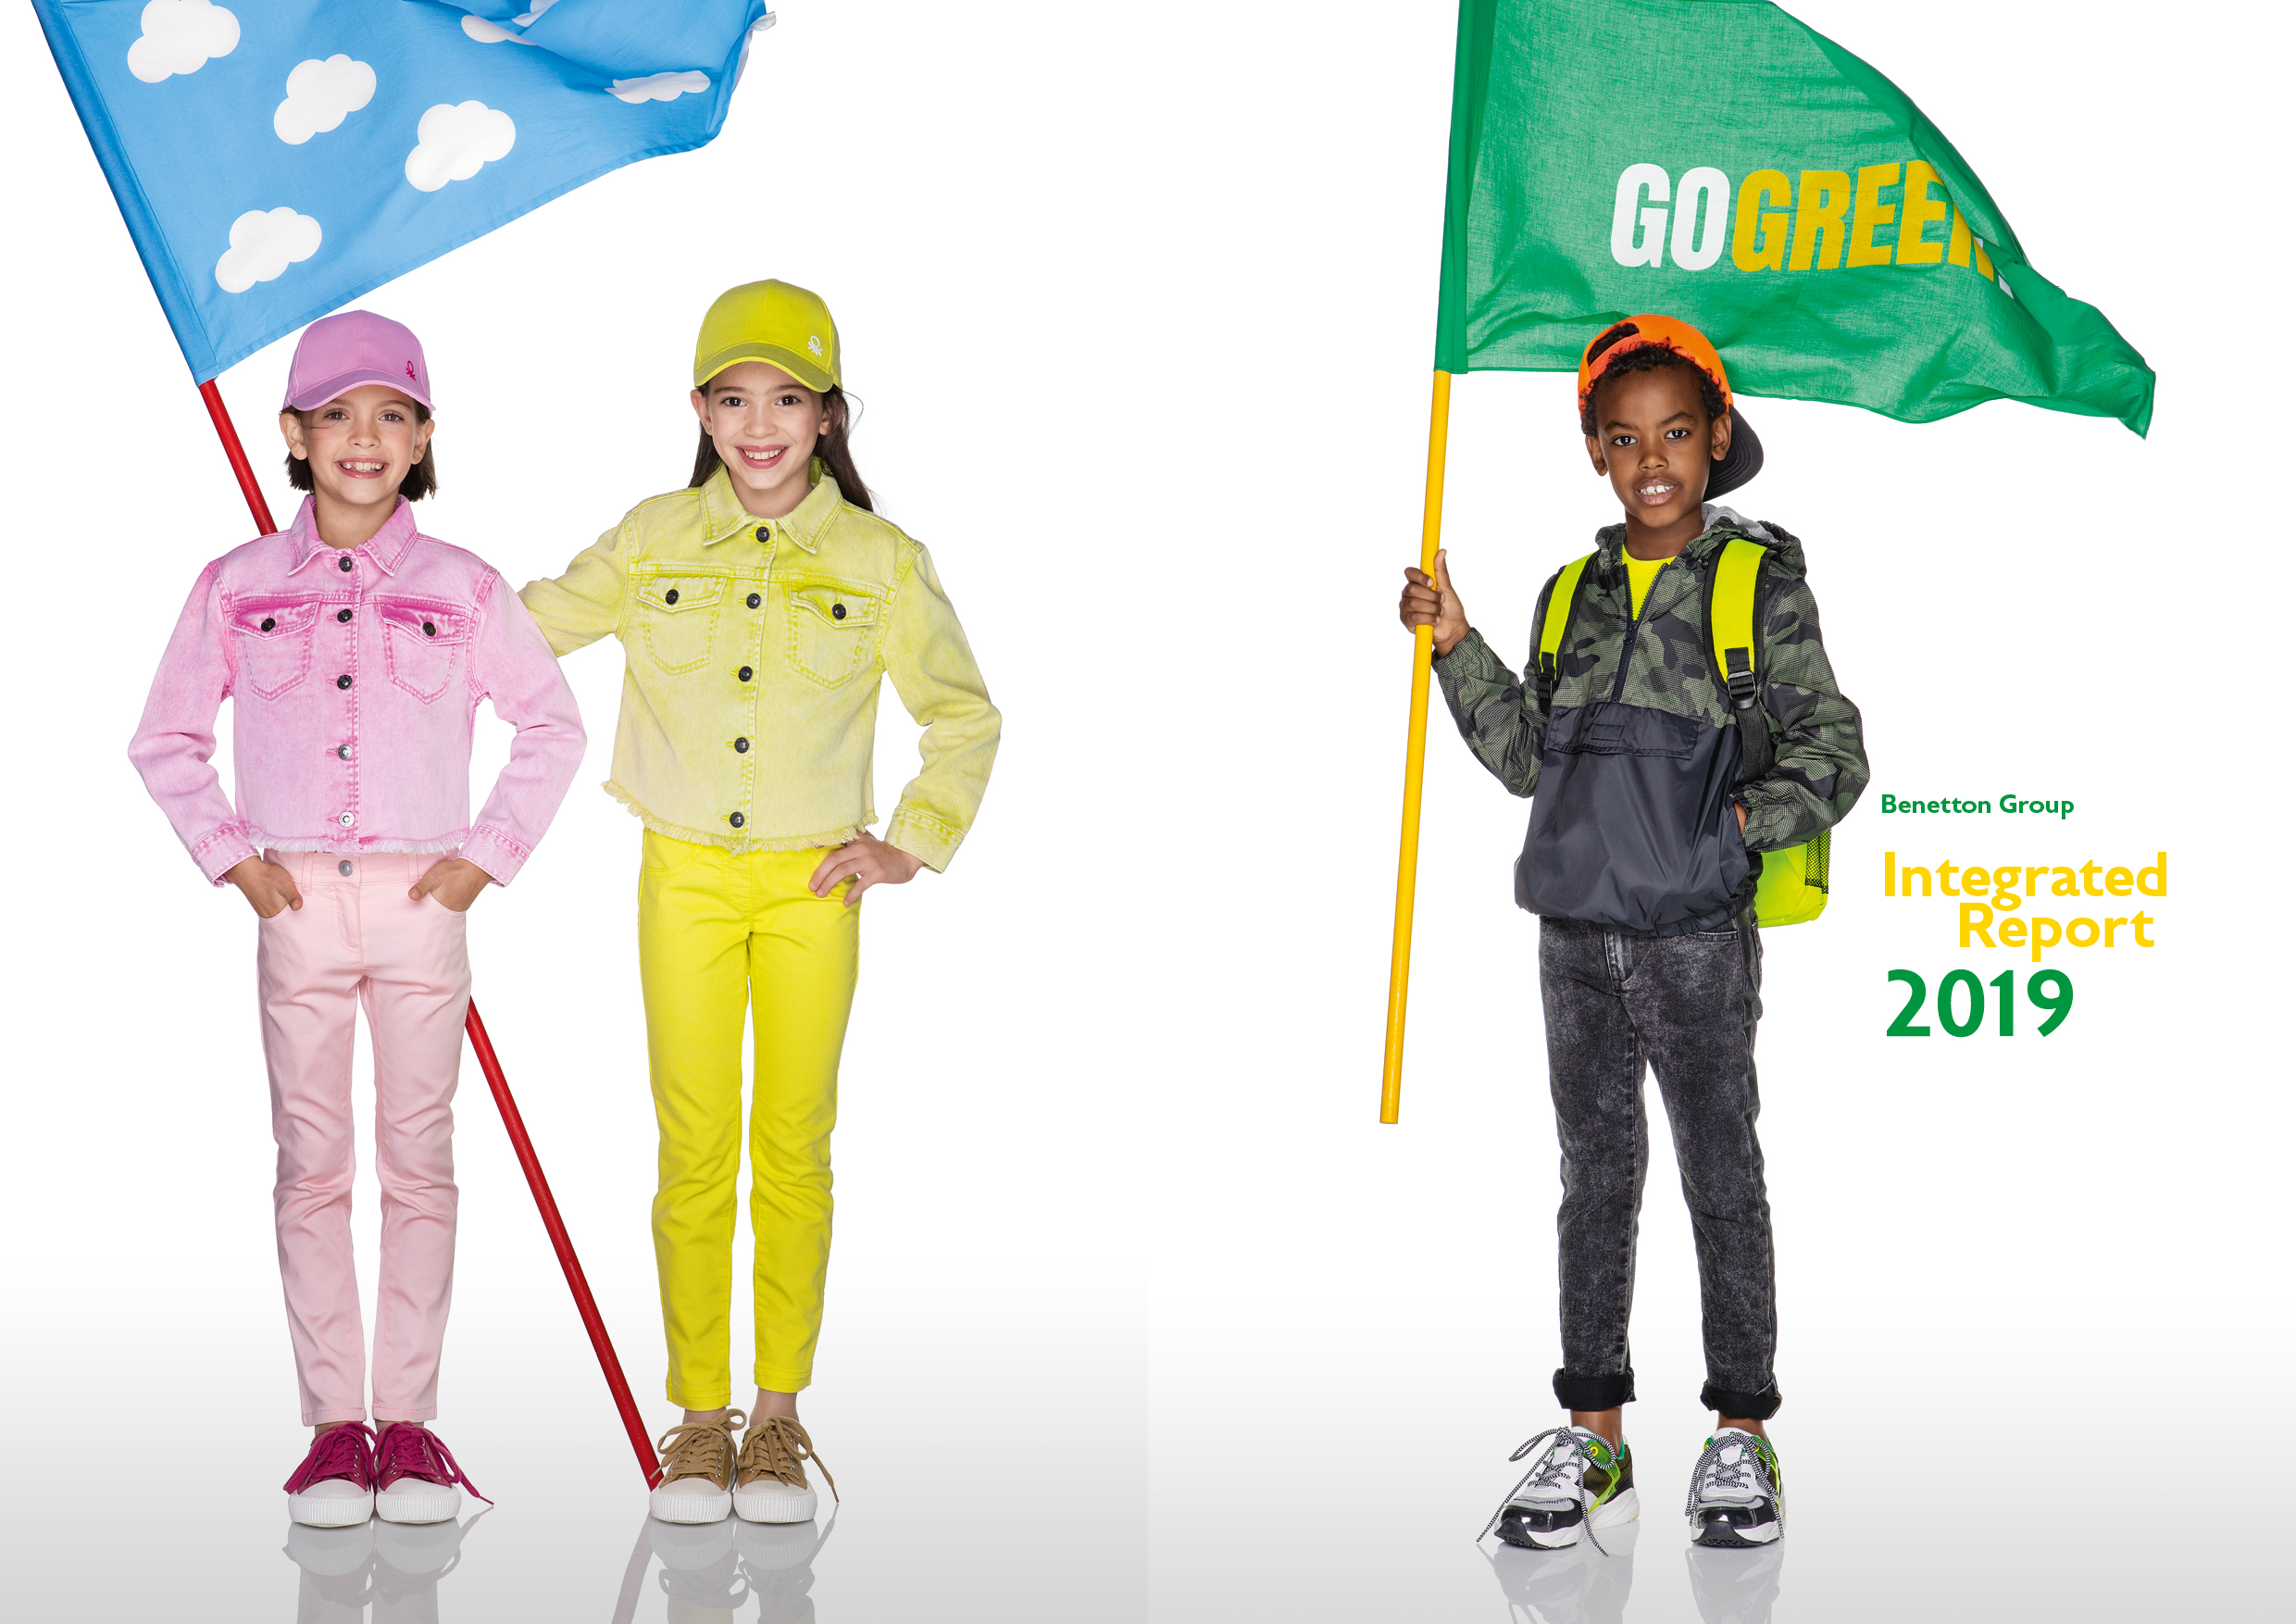 Benetton Group 2019 Integrated Report